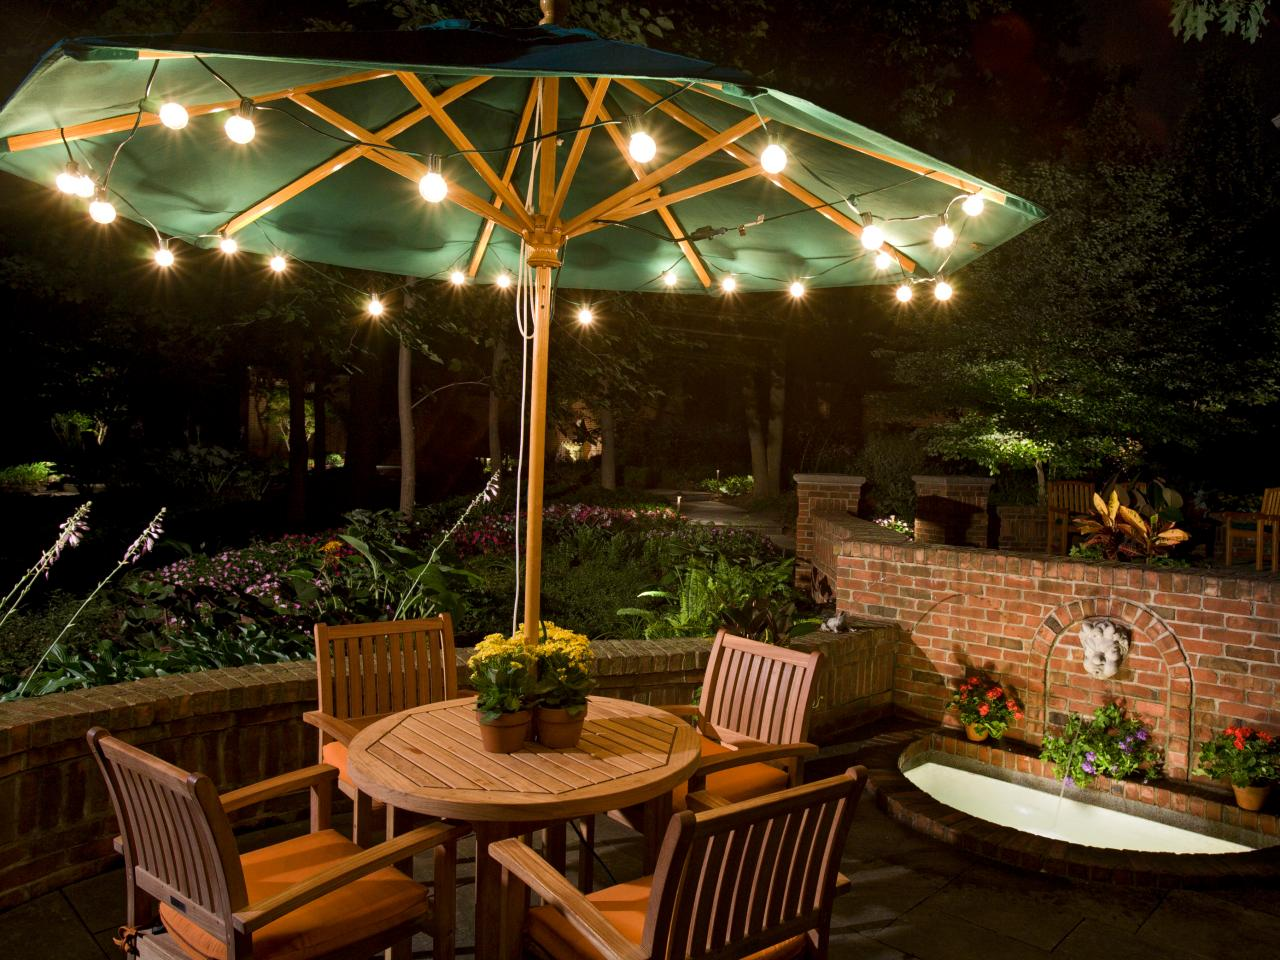 outdoor patio lights under an umbrella. inexpensive party lights give patio ... IPOXLAZ